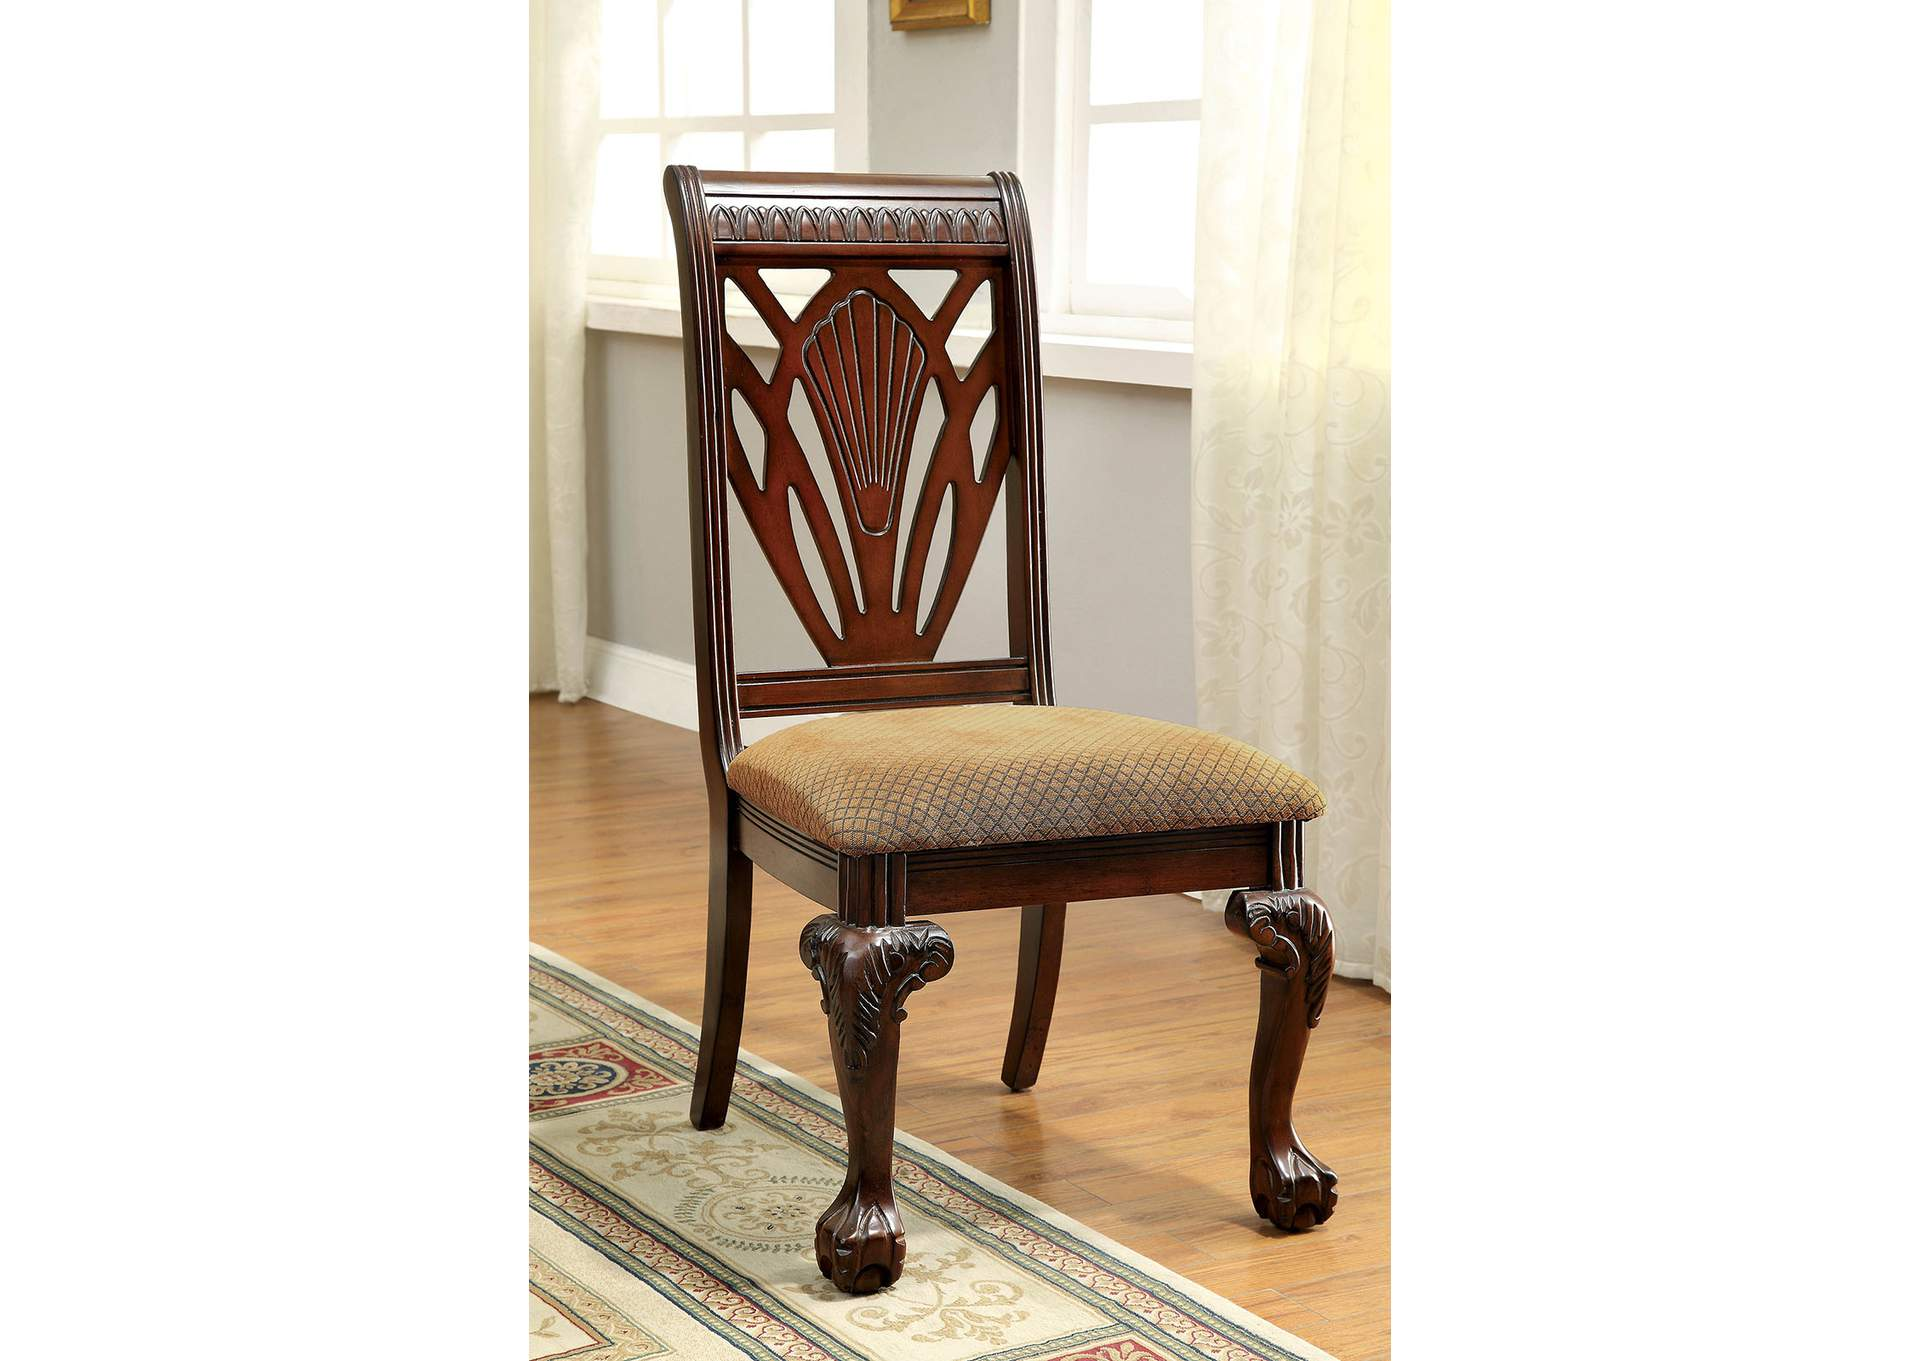 Petersburg l Cherry Side Chair (Set of 2),Furniture of America